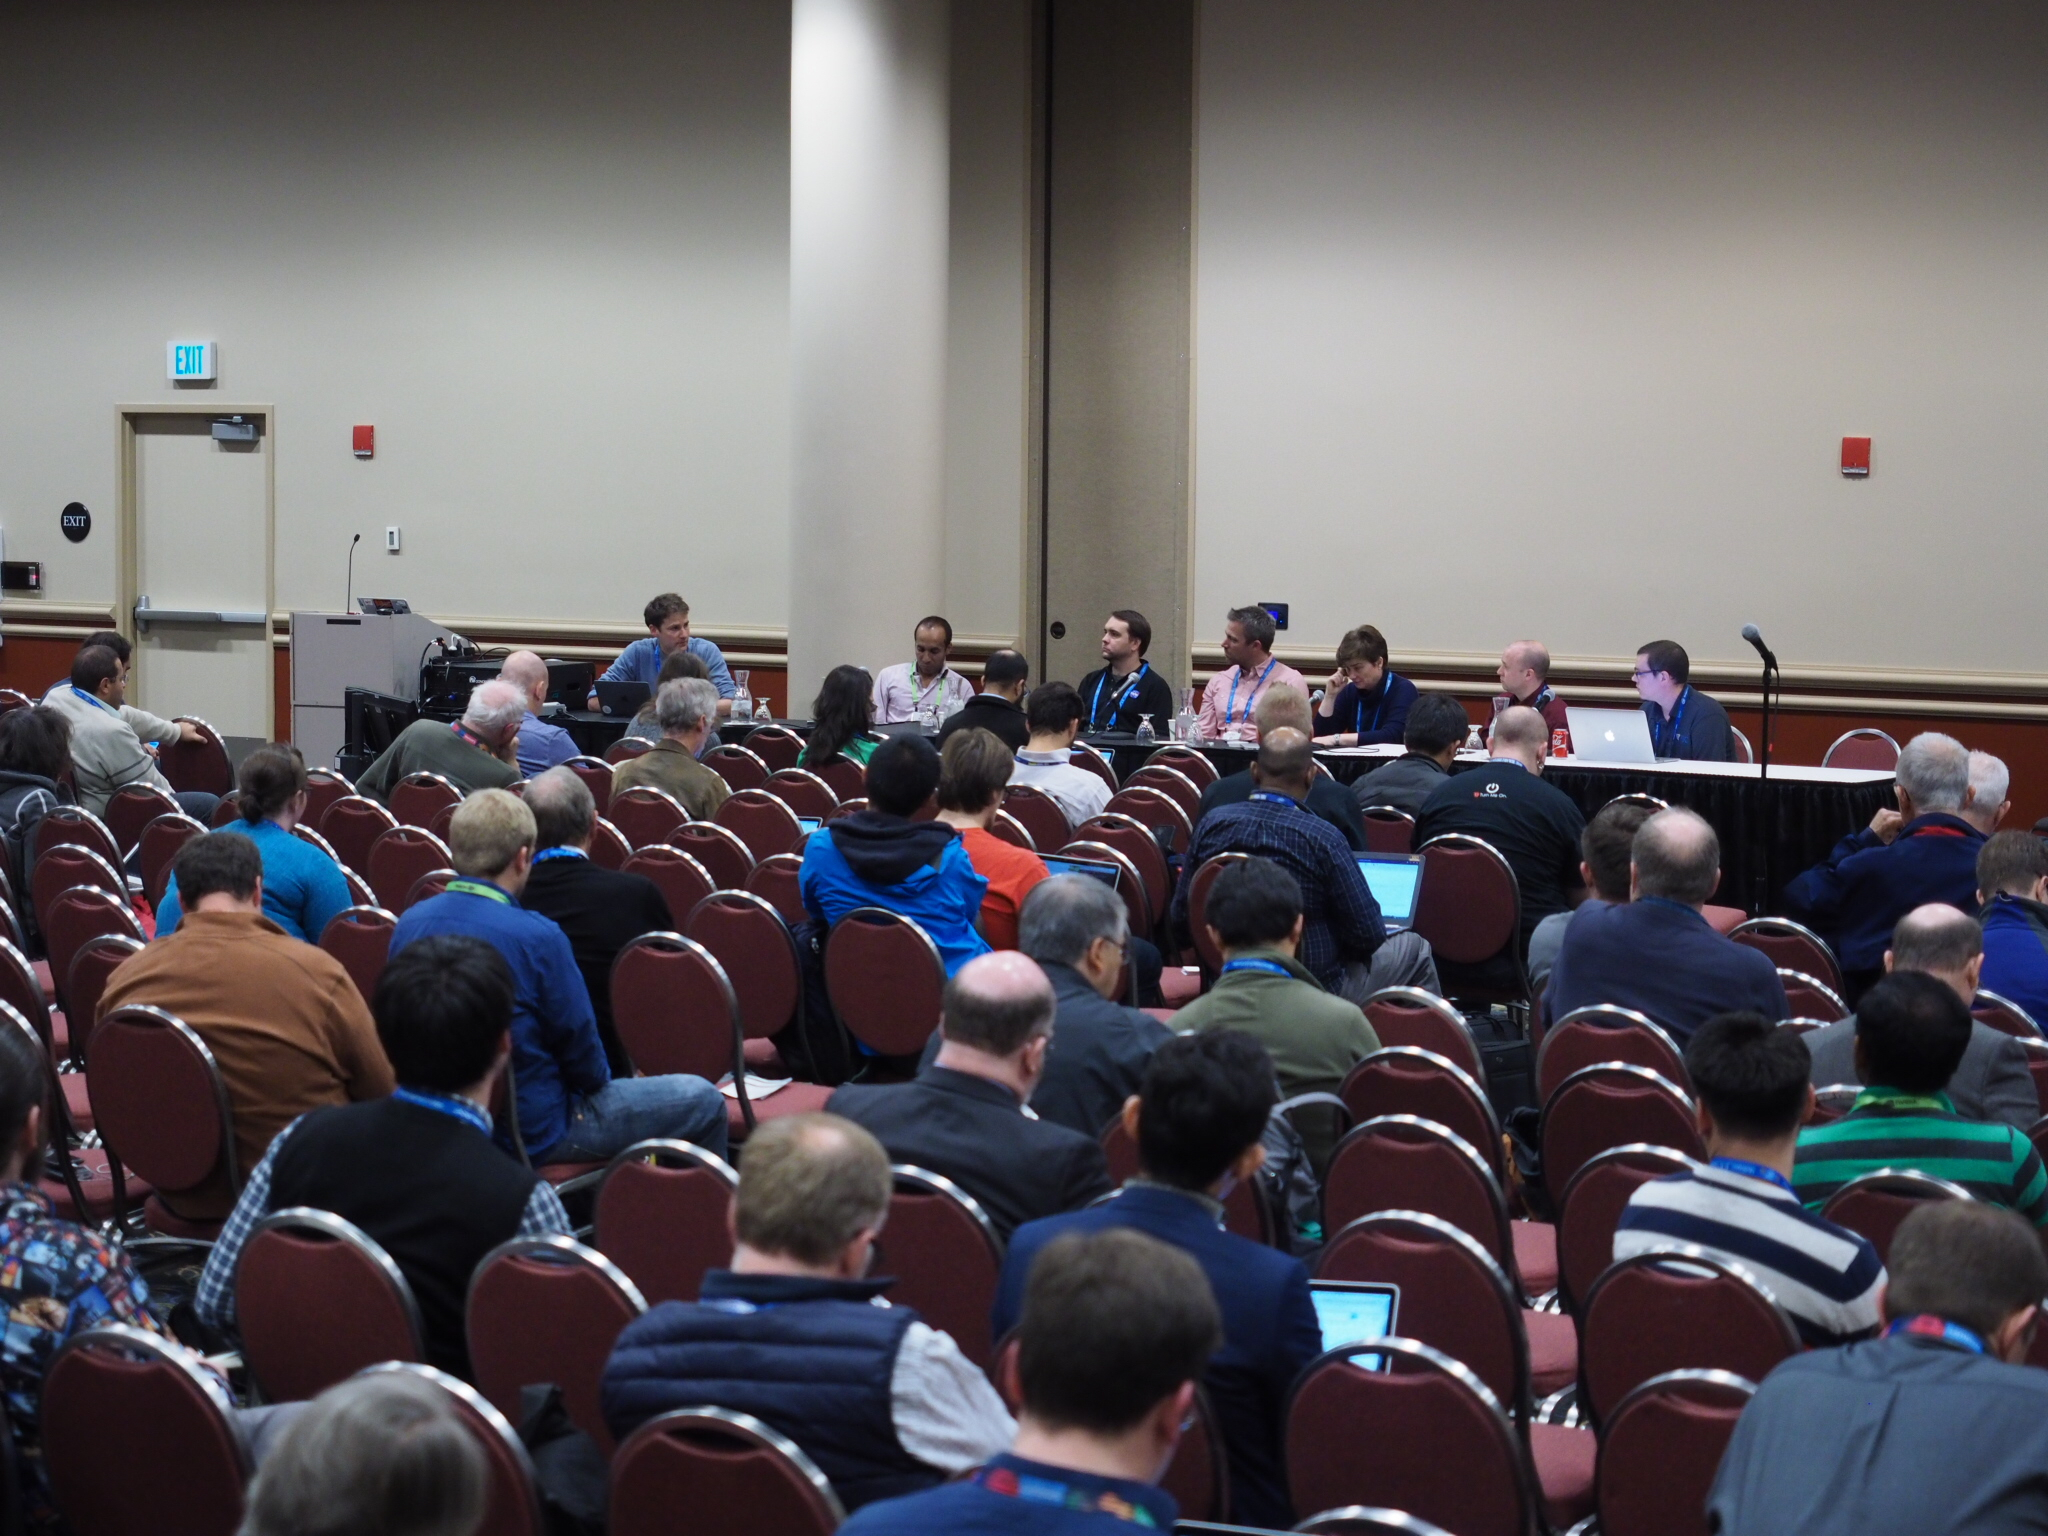 OpenStack HPC panel session